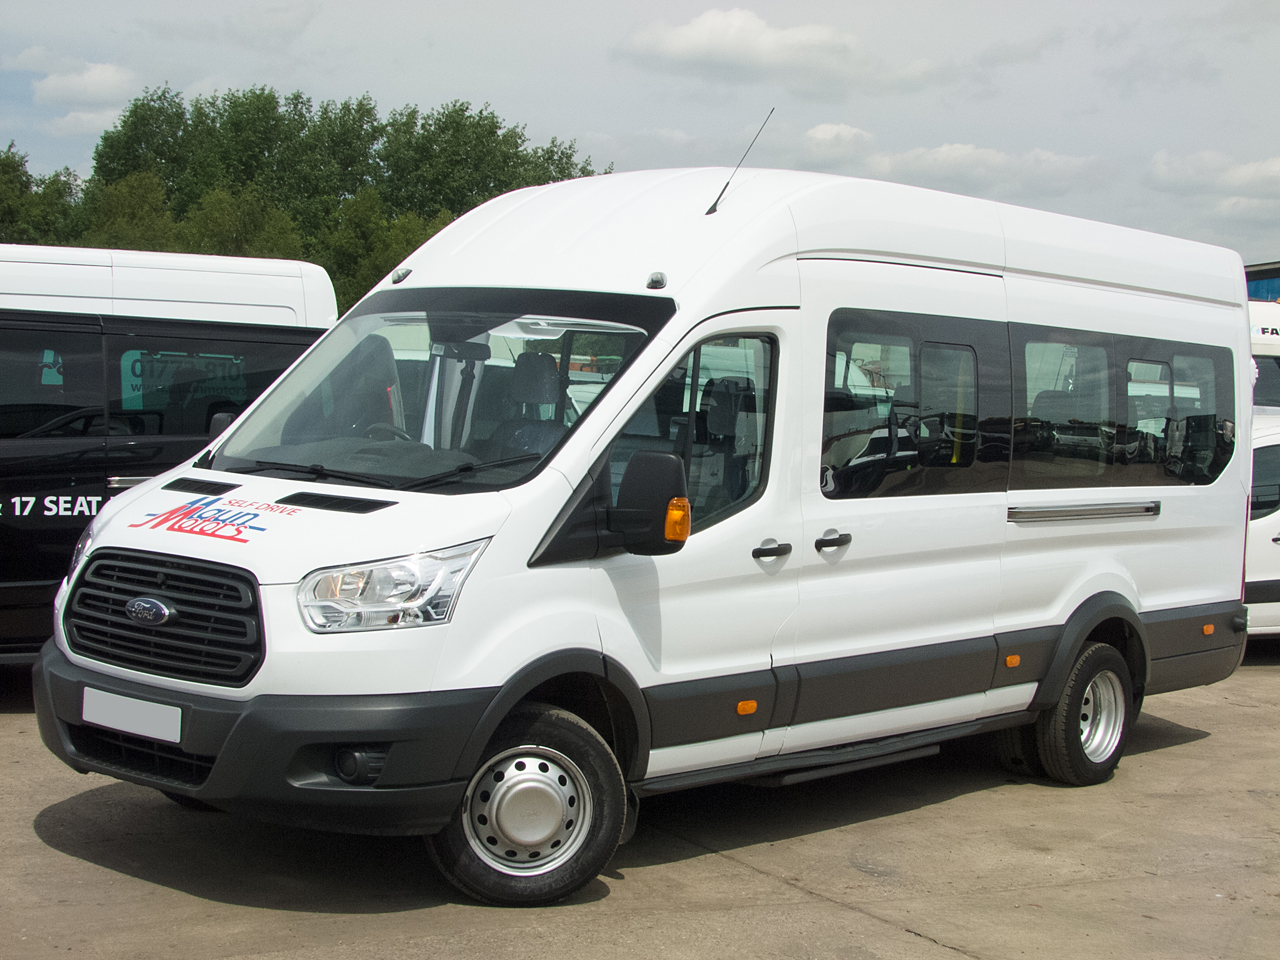 PSV Minibus hire. 15 seat and 17 seat self drive PSV minibuses available, rental, from Maun Motors Self Drive